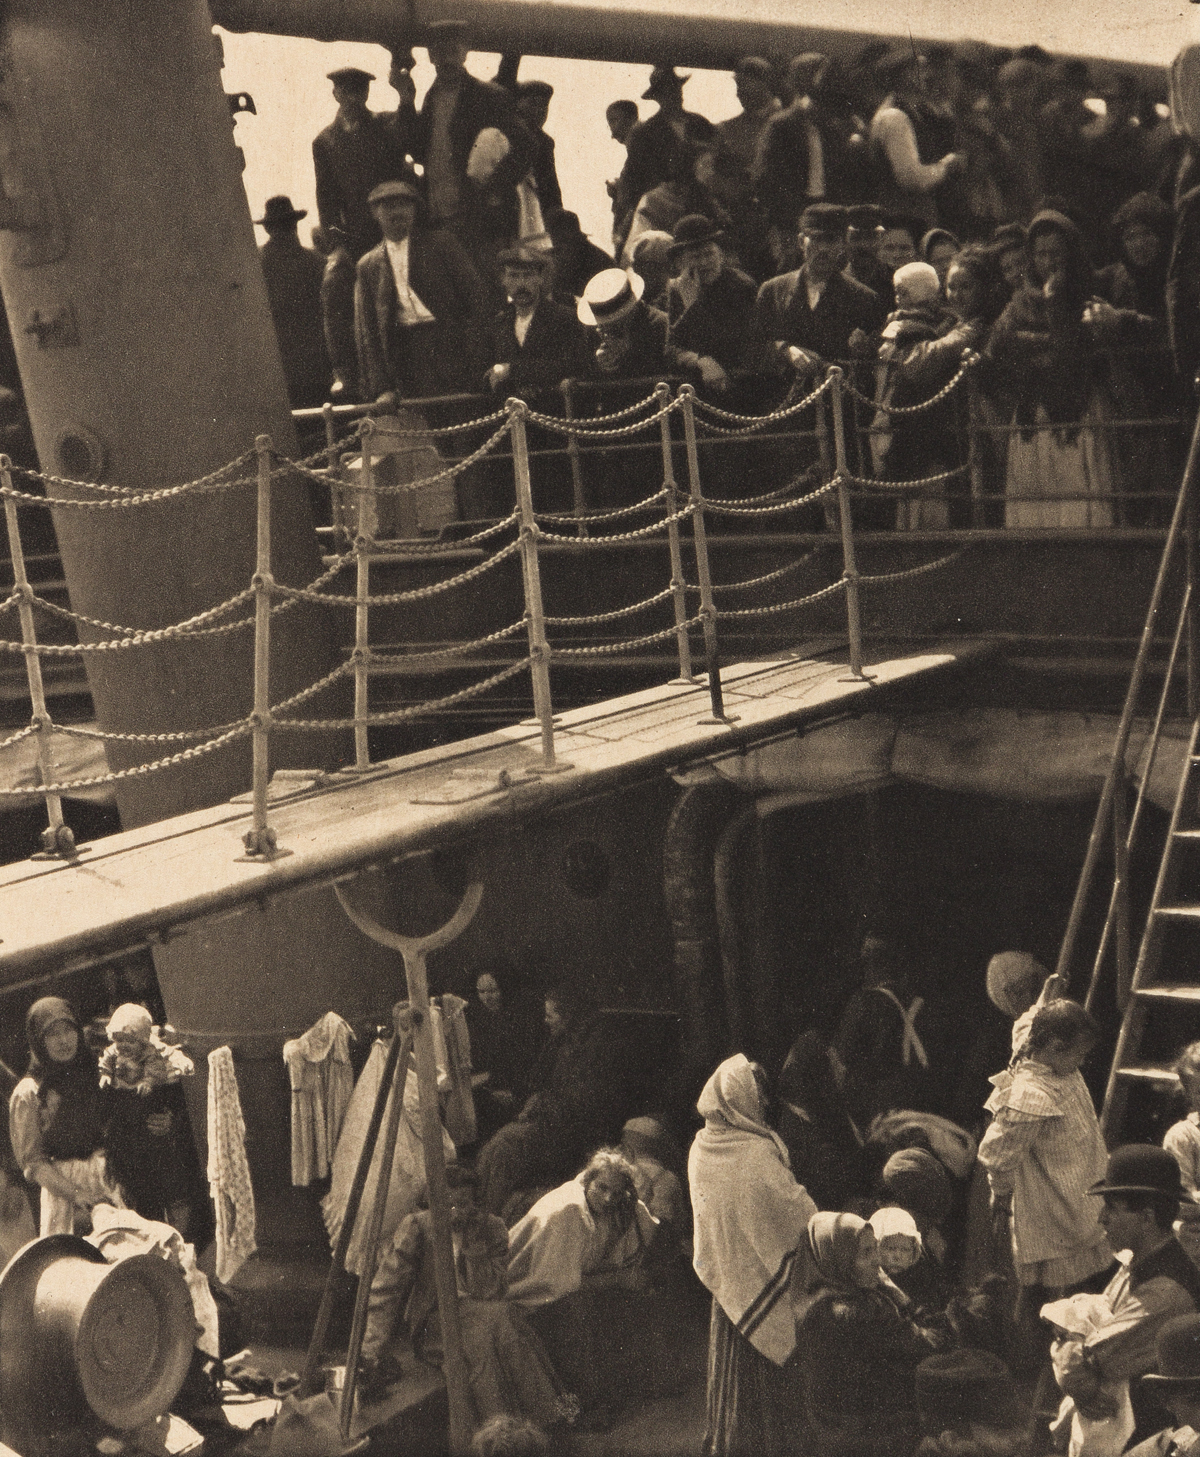 ALFRED STIEGLITZ (1864-1946) The Steerage, from Camera Work, Number 36.